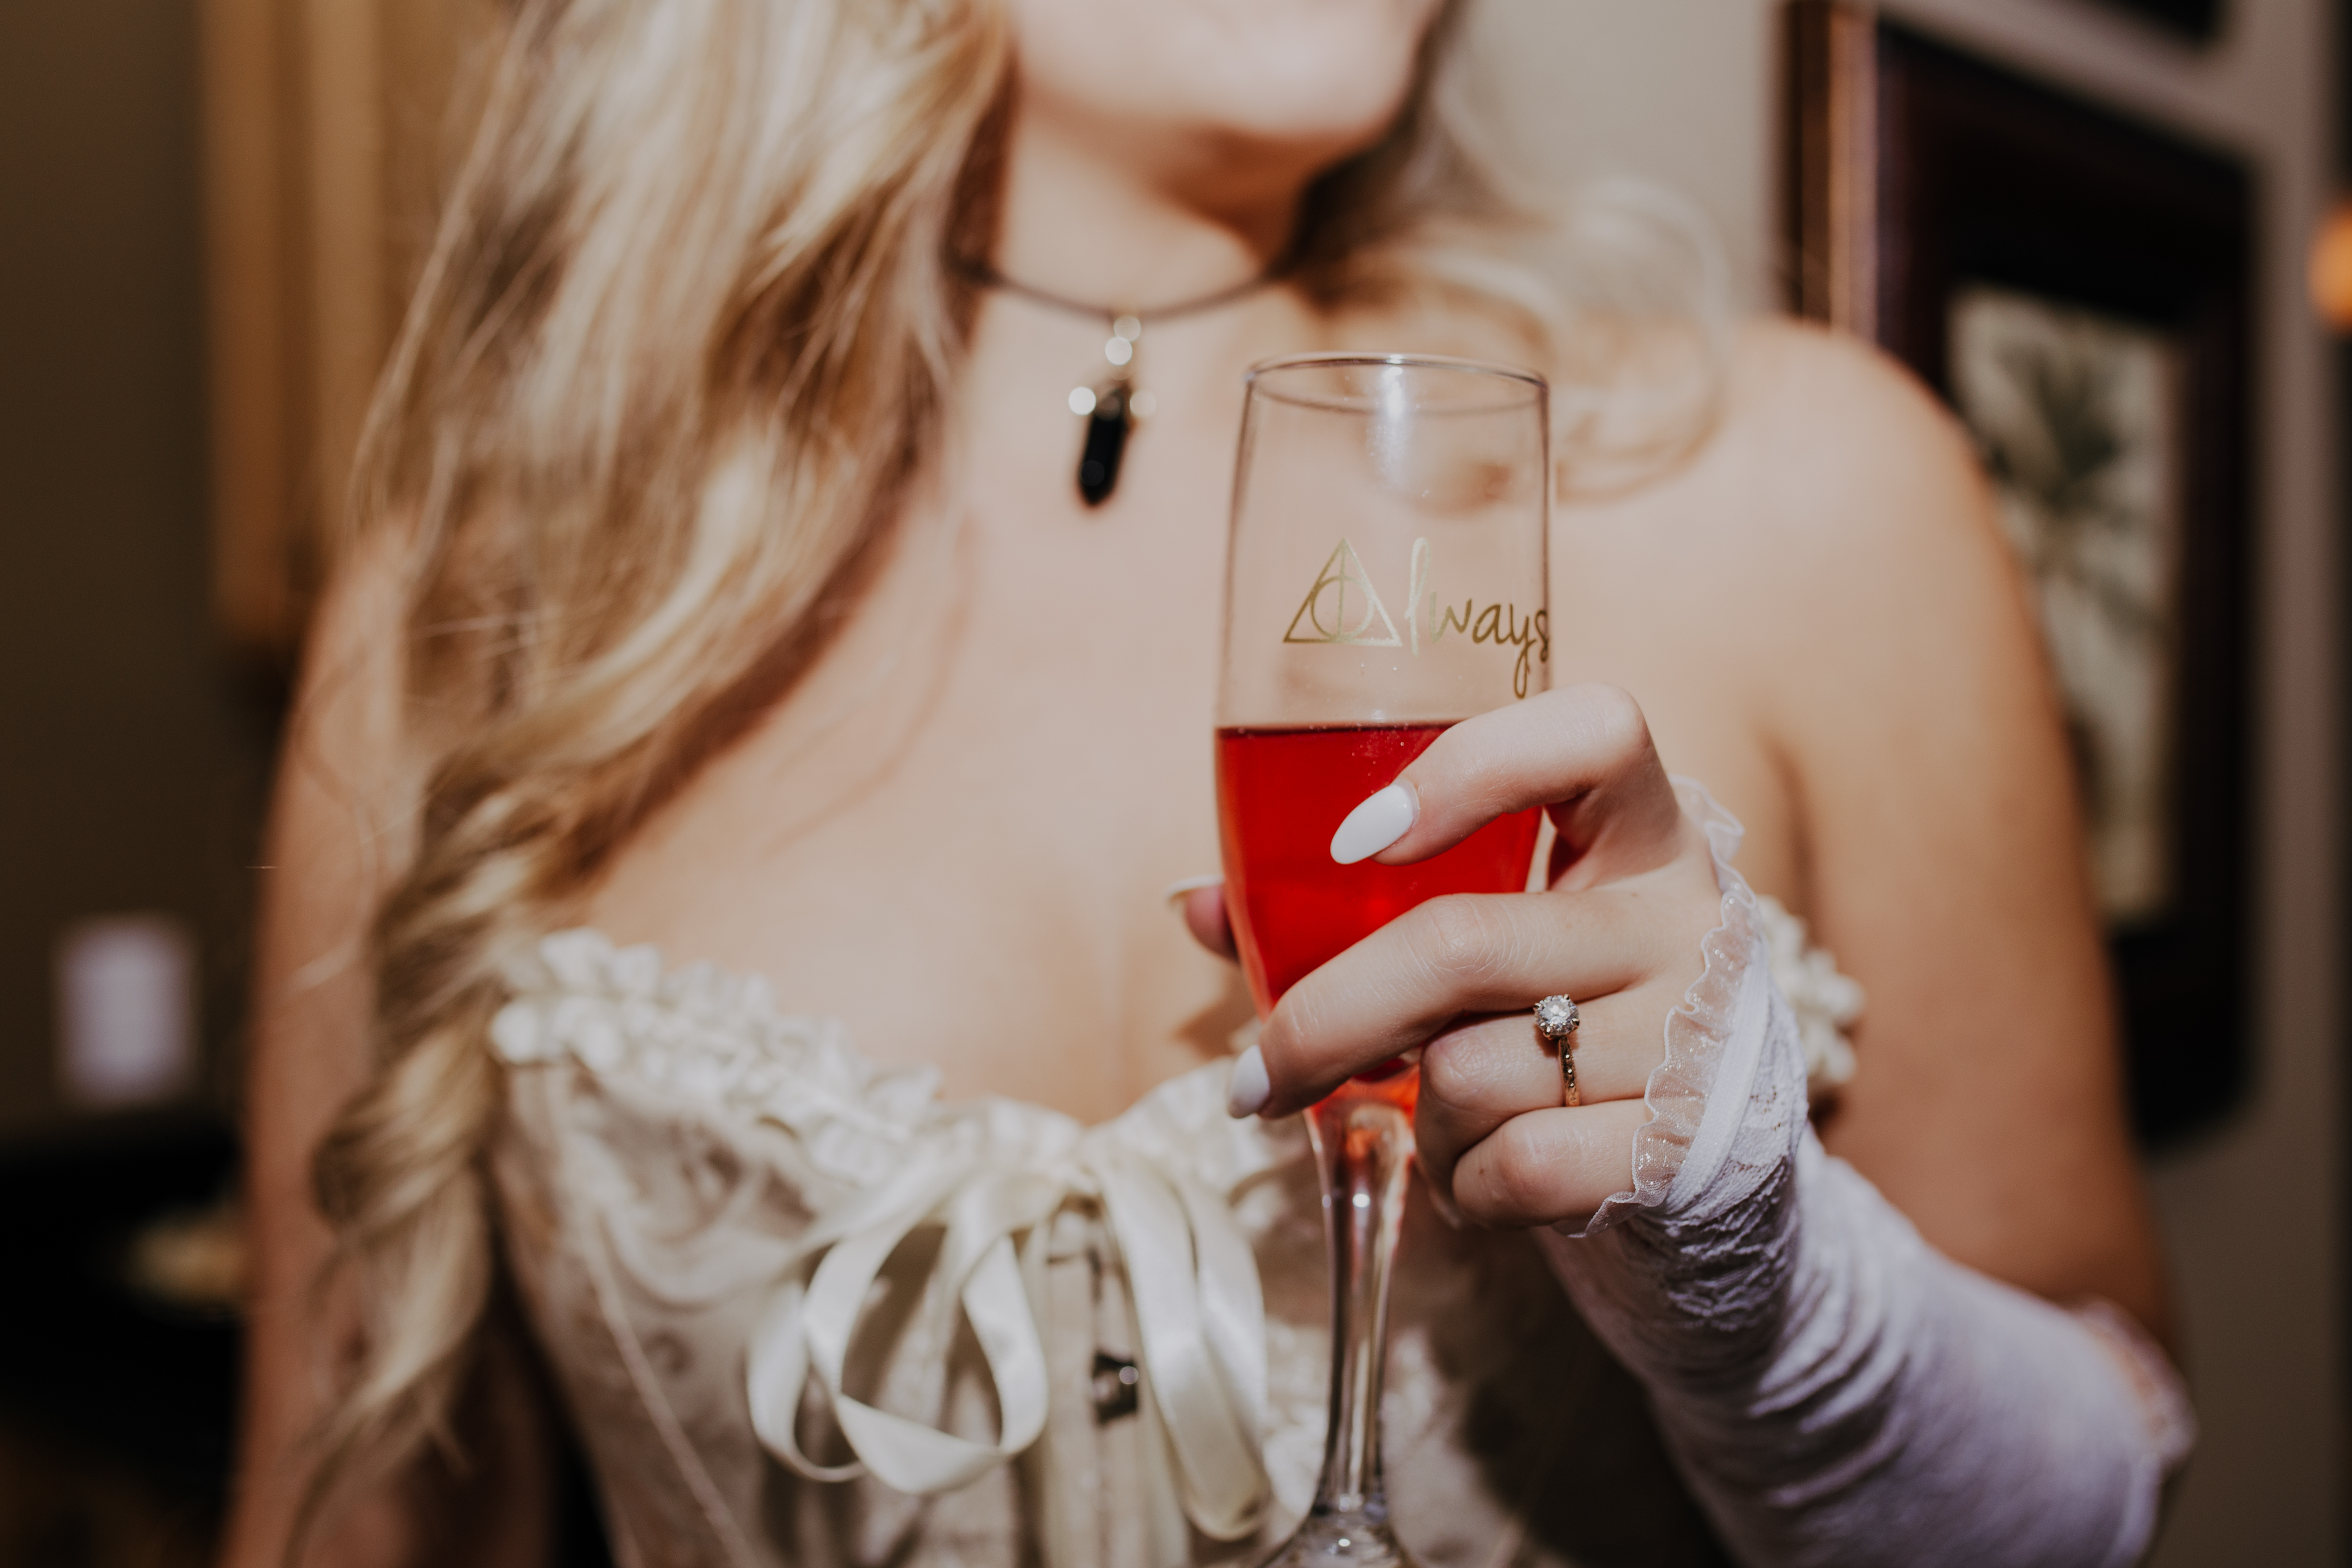 harry potter champagne glass held by bride with vintage rose gold ring that says always